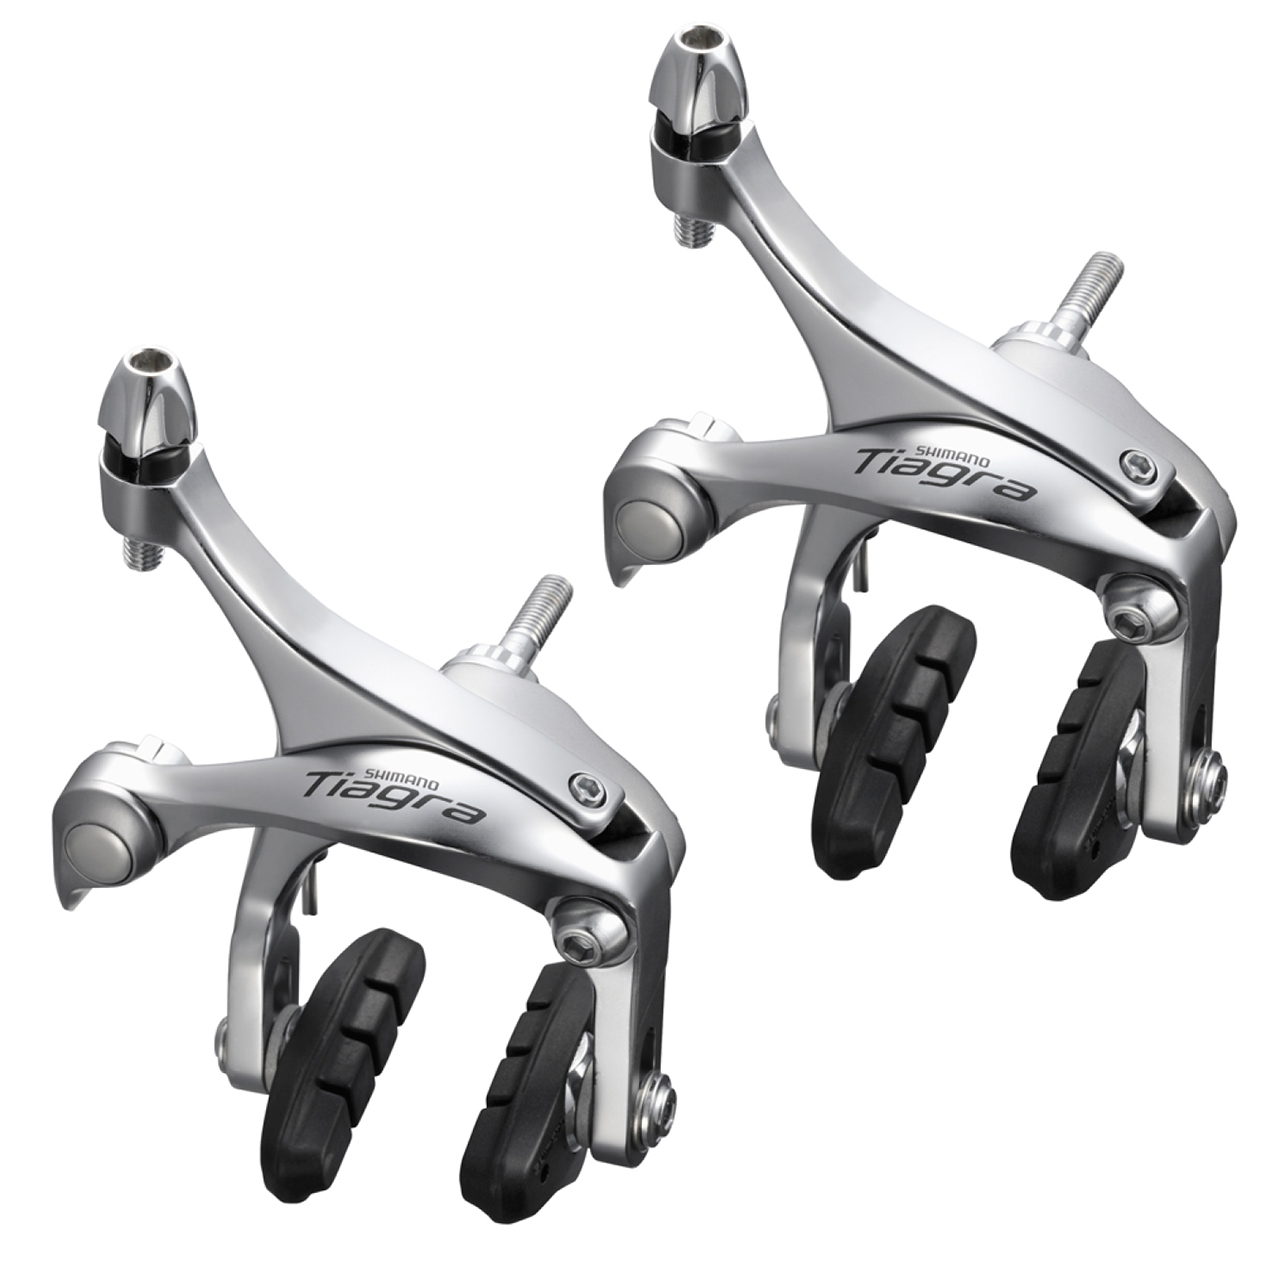 96e002d8996 Shimano Tiagra 4600 Brake Calipers - Pair | Merlin Cycles